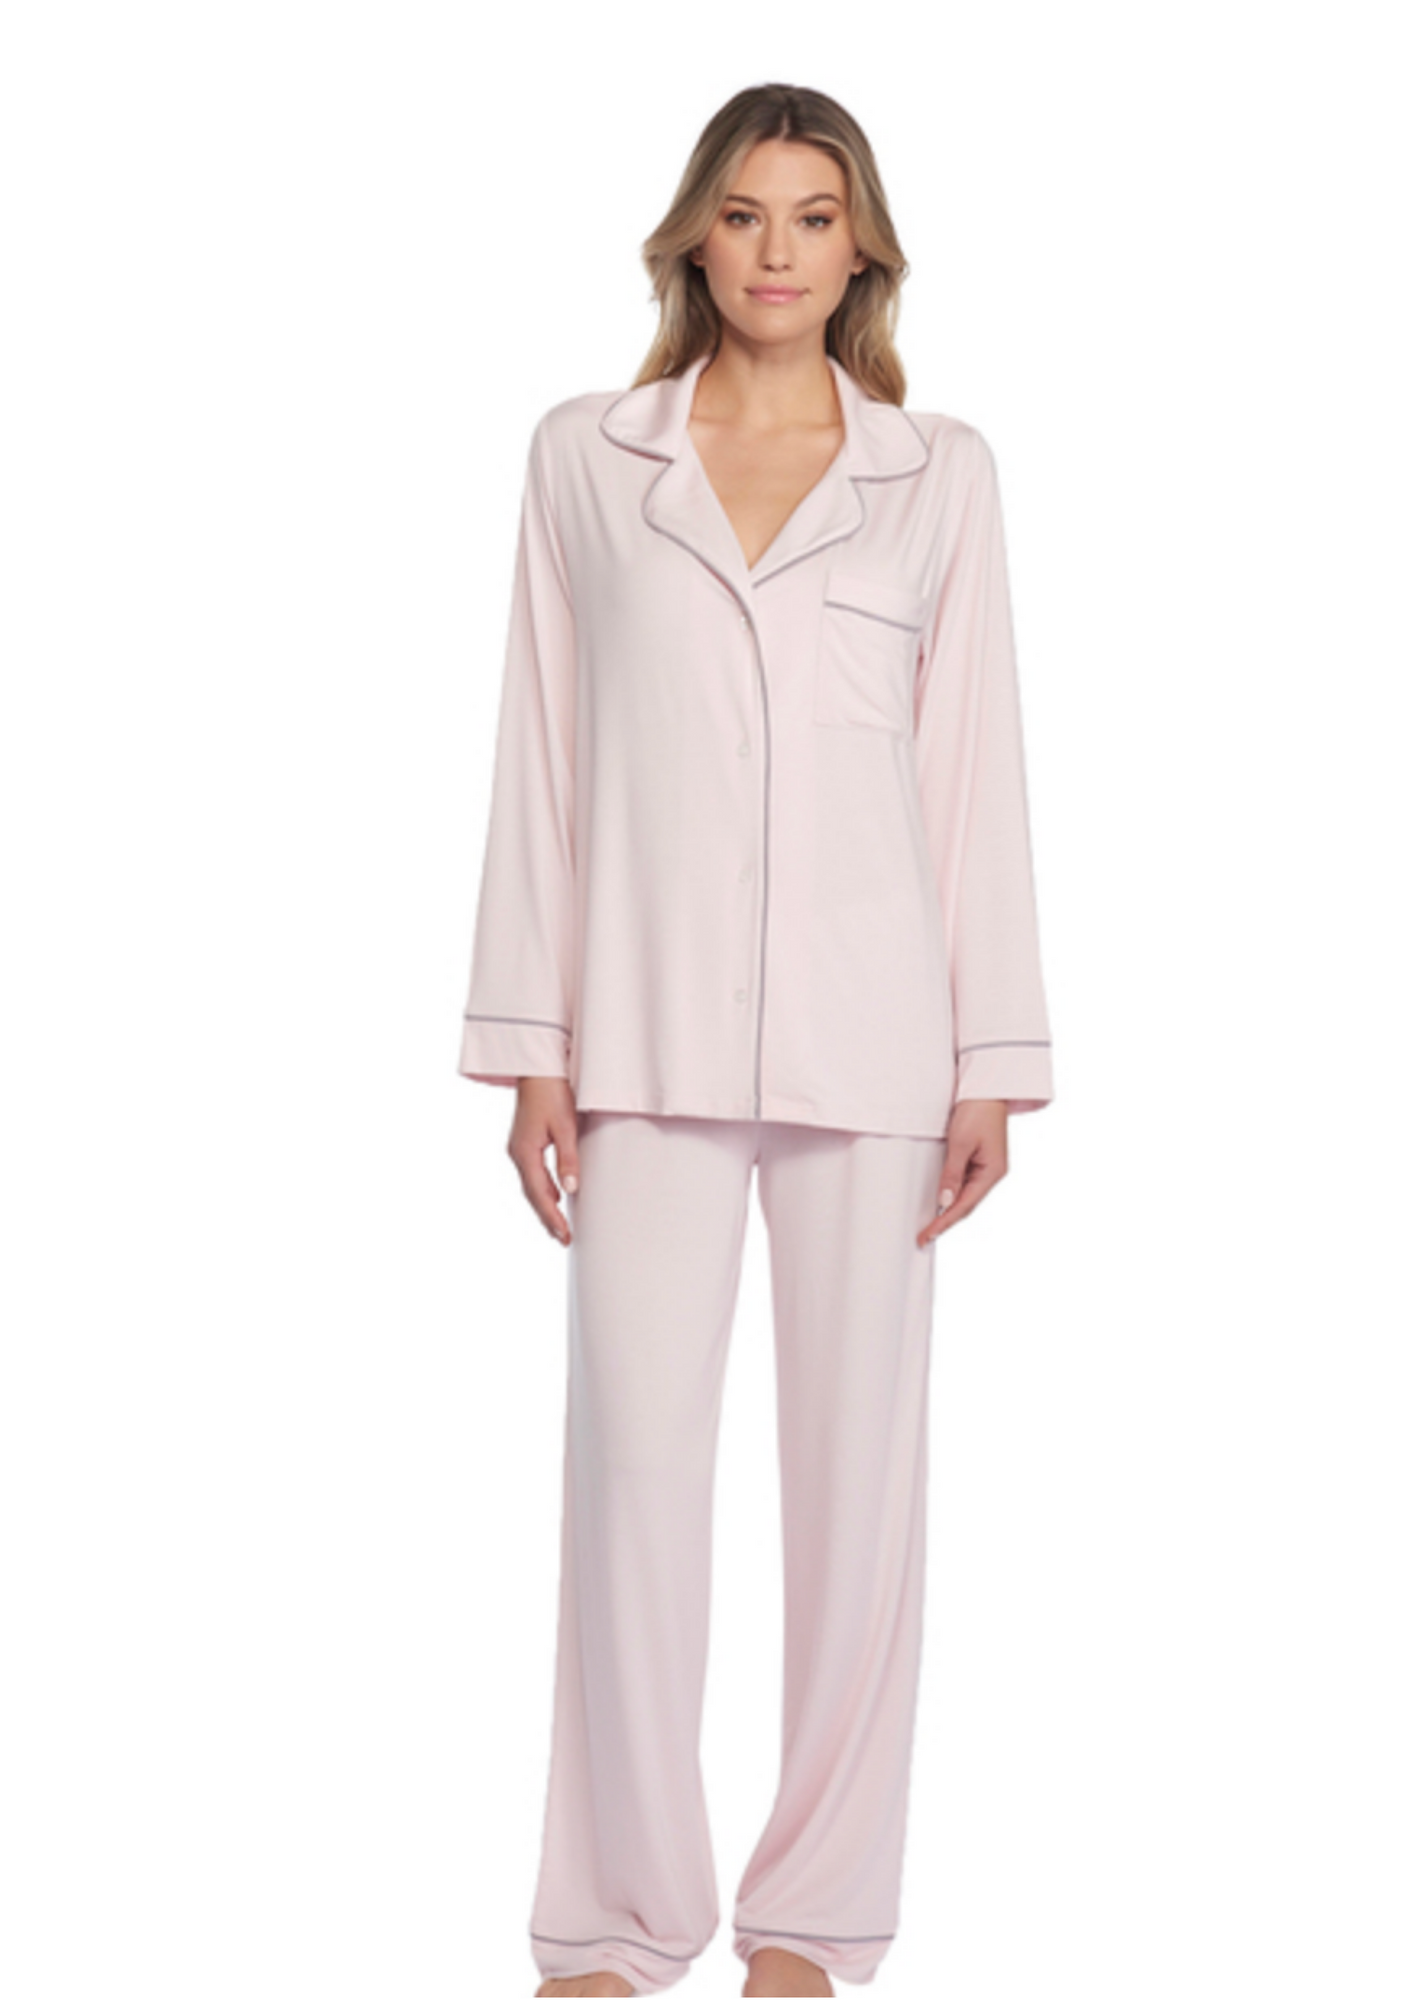 LUXE MILK JERSEY PIPED PAJAMA SET - PINK/PEWTER